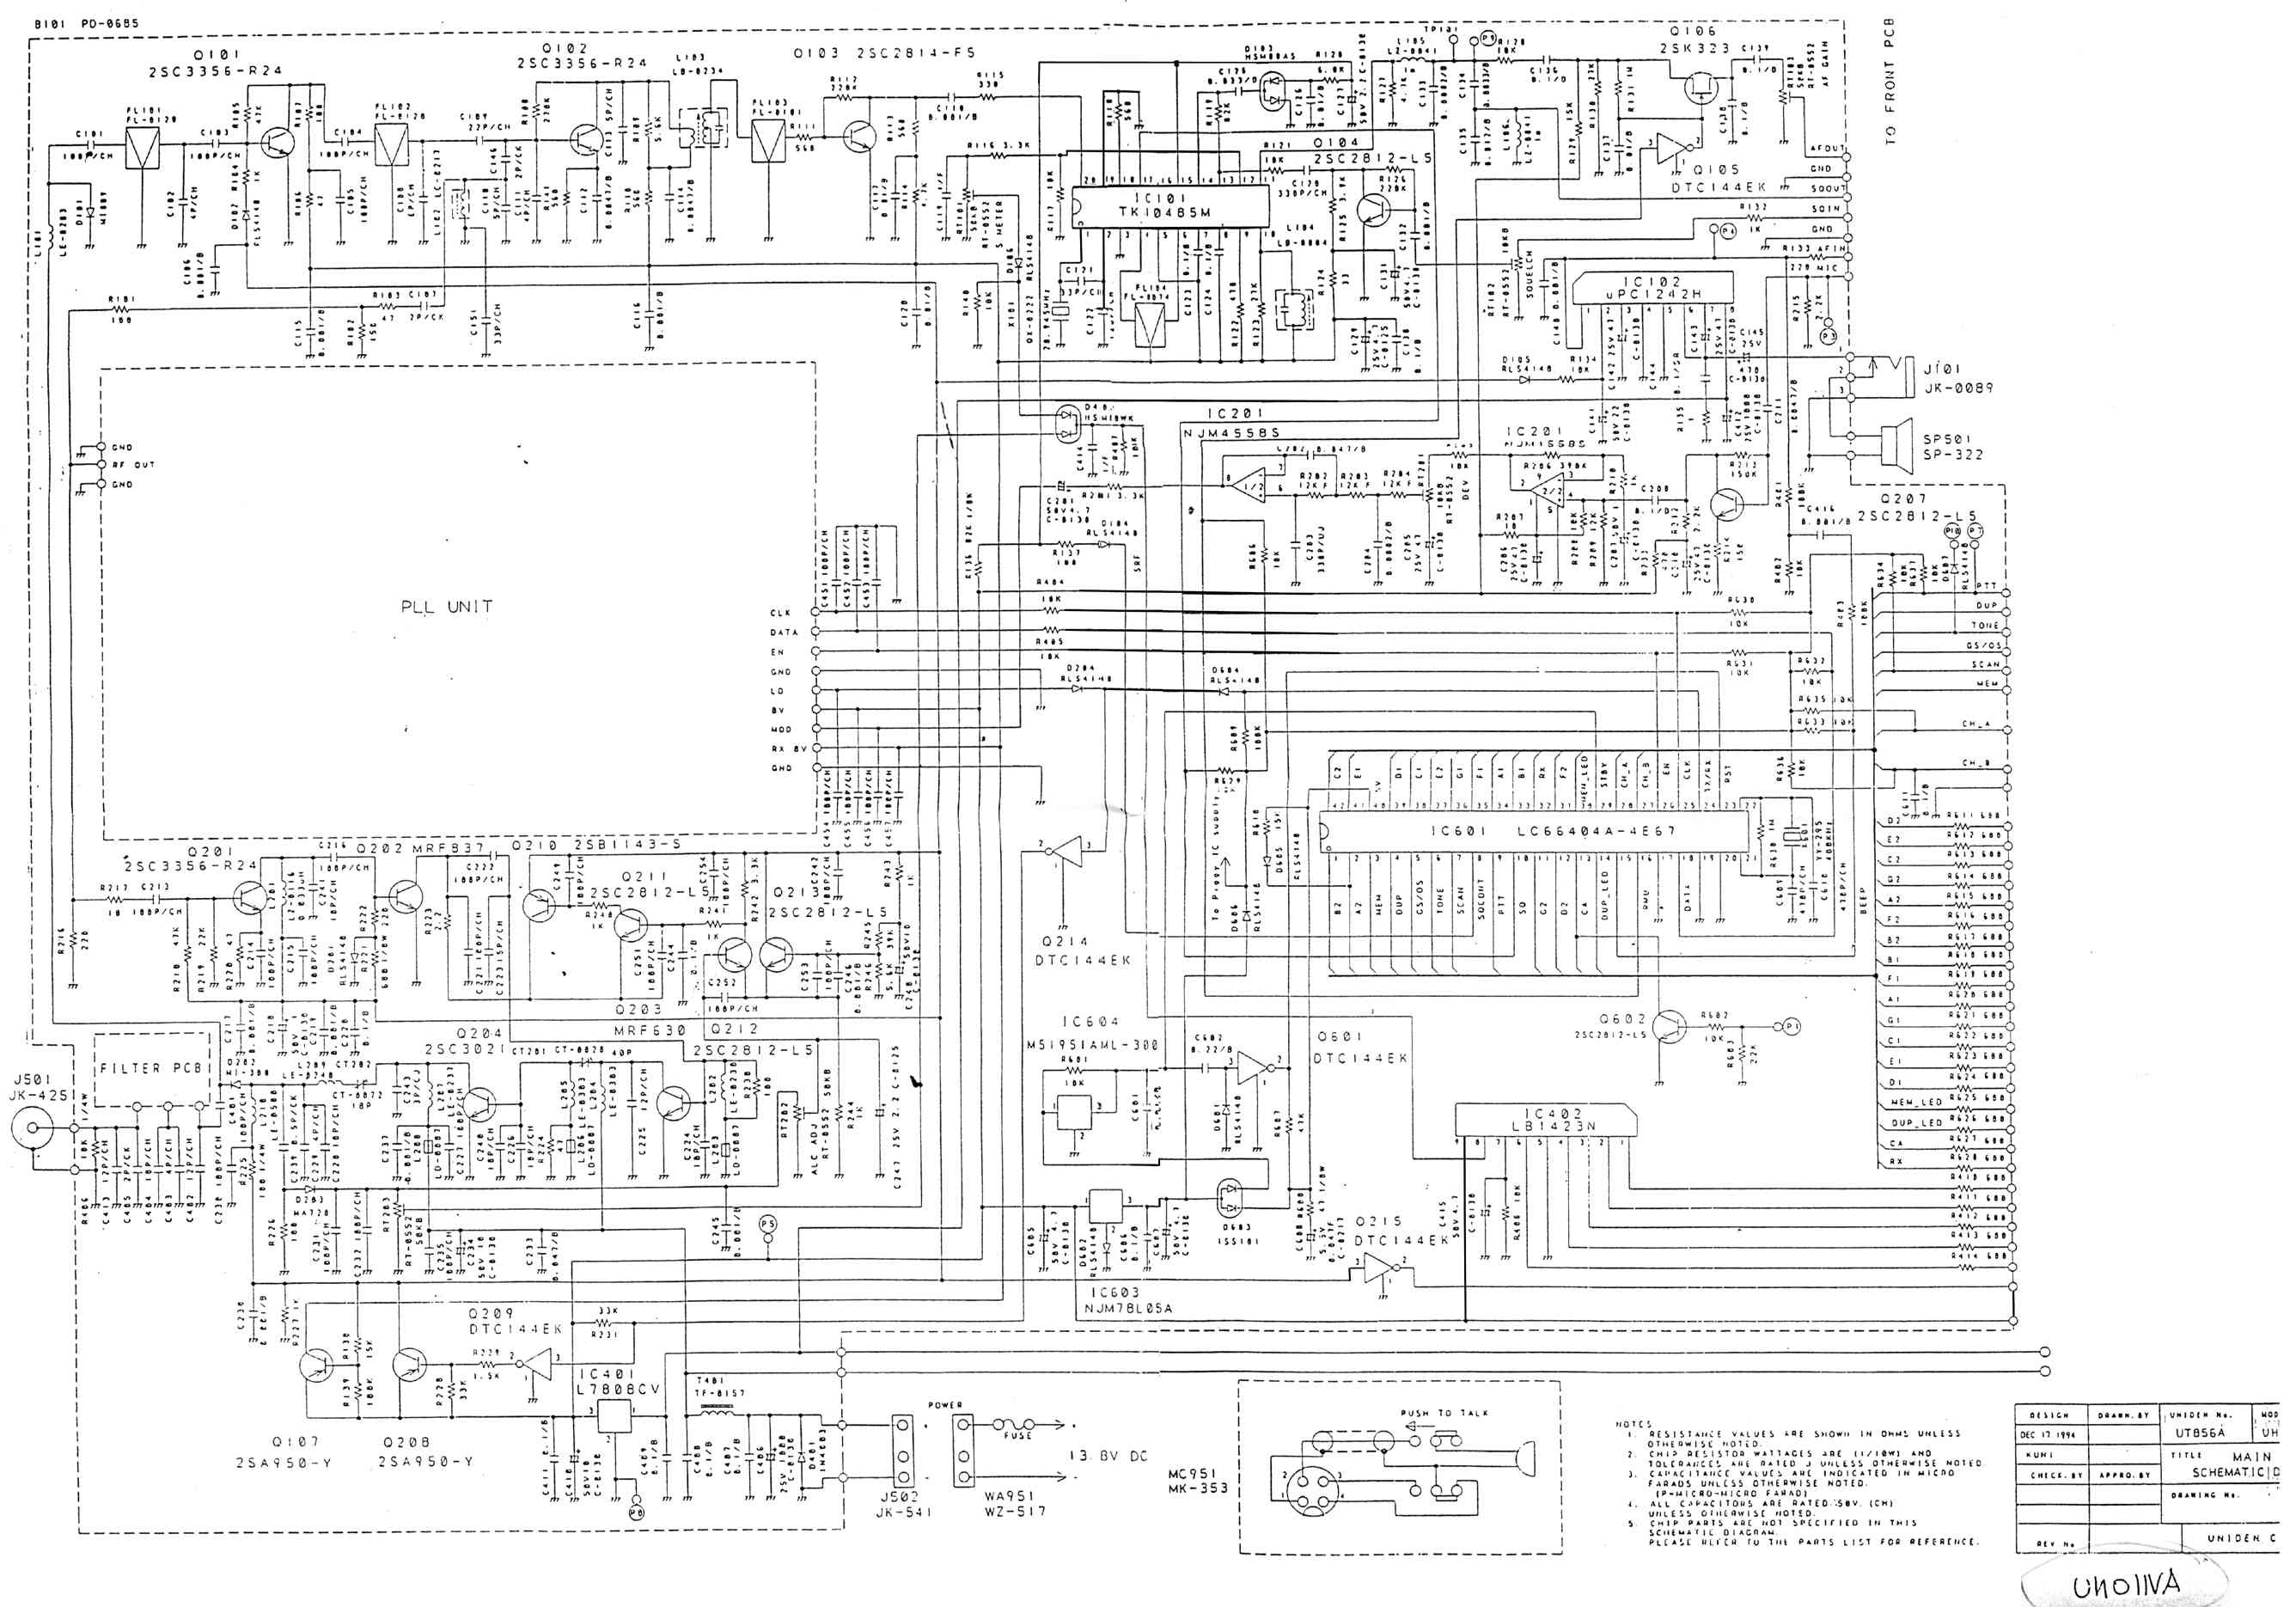 Uniden Uh 011 Scan Mod Ocau Wiki Main Pcb Schematic Diagram